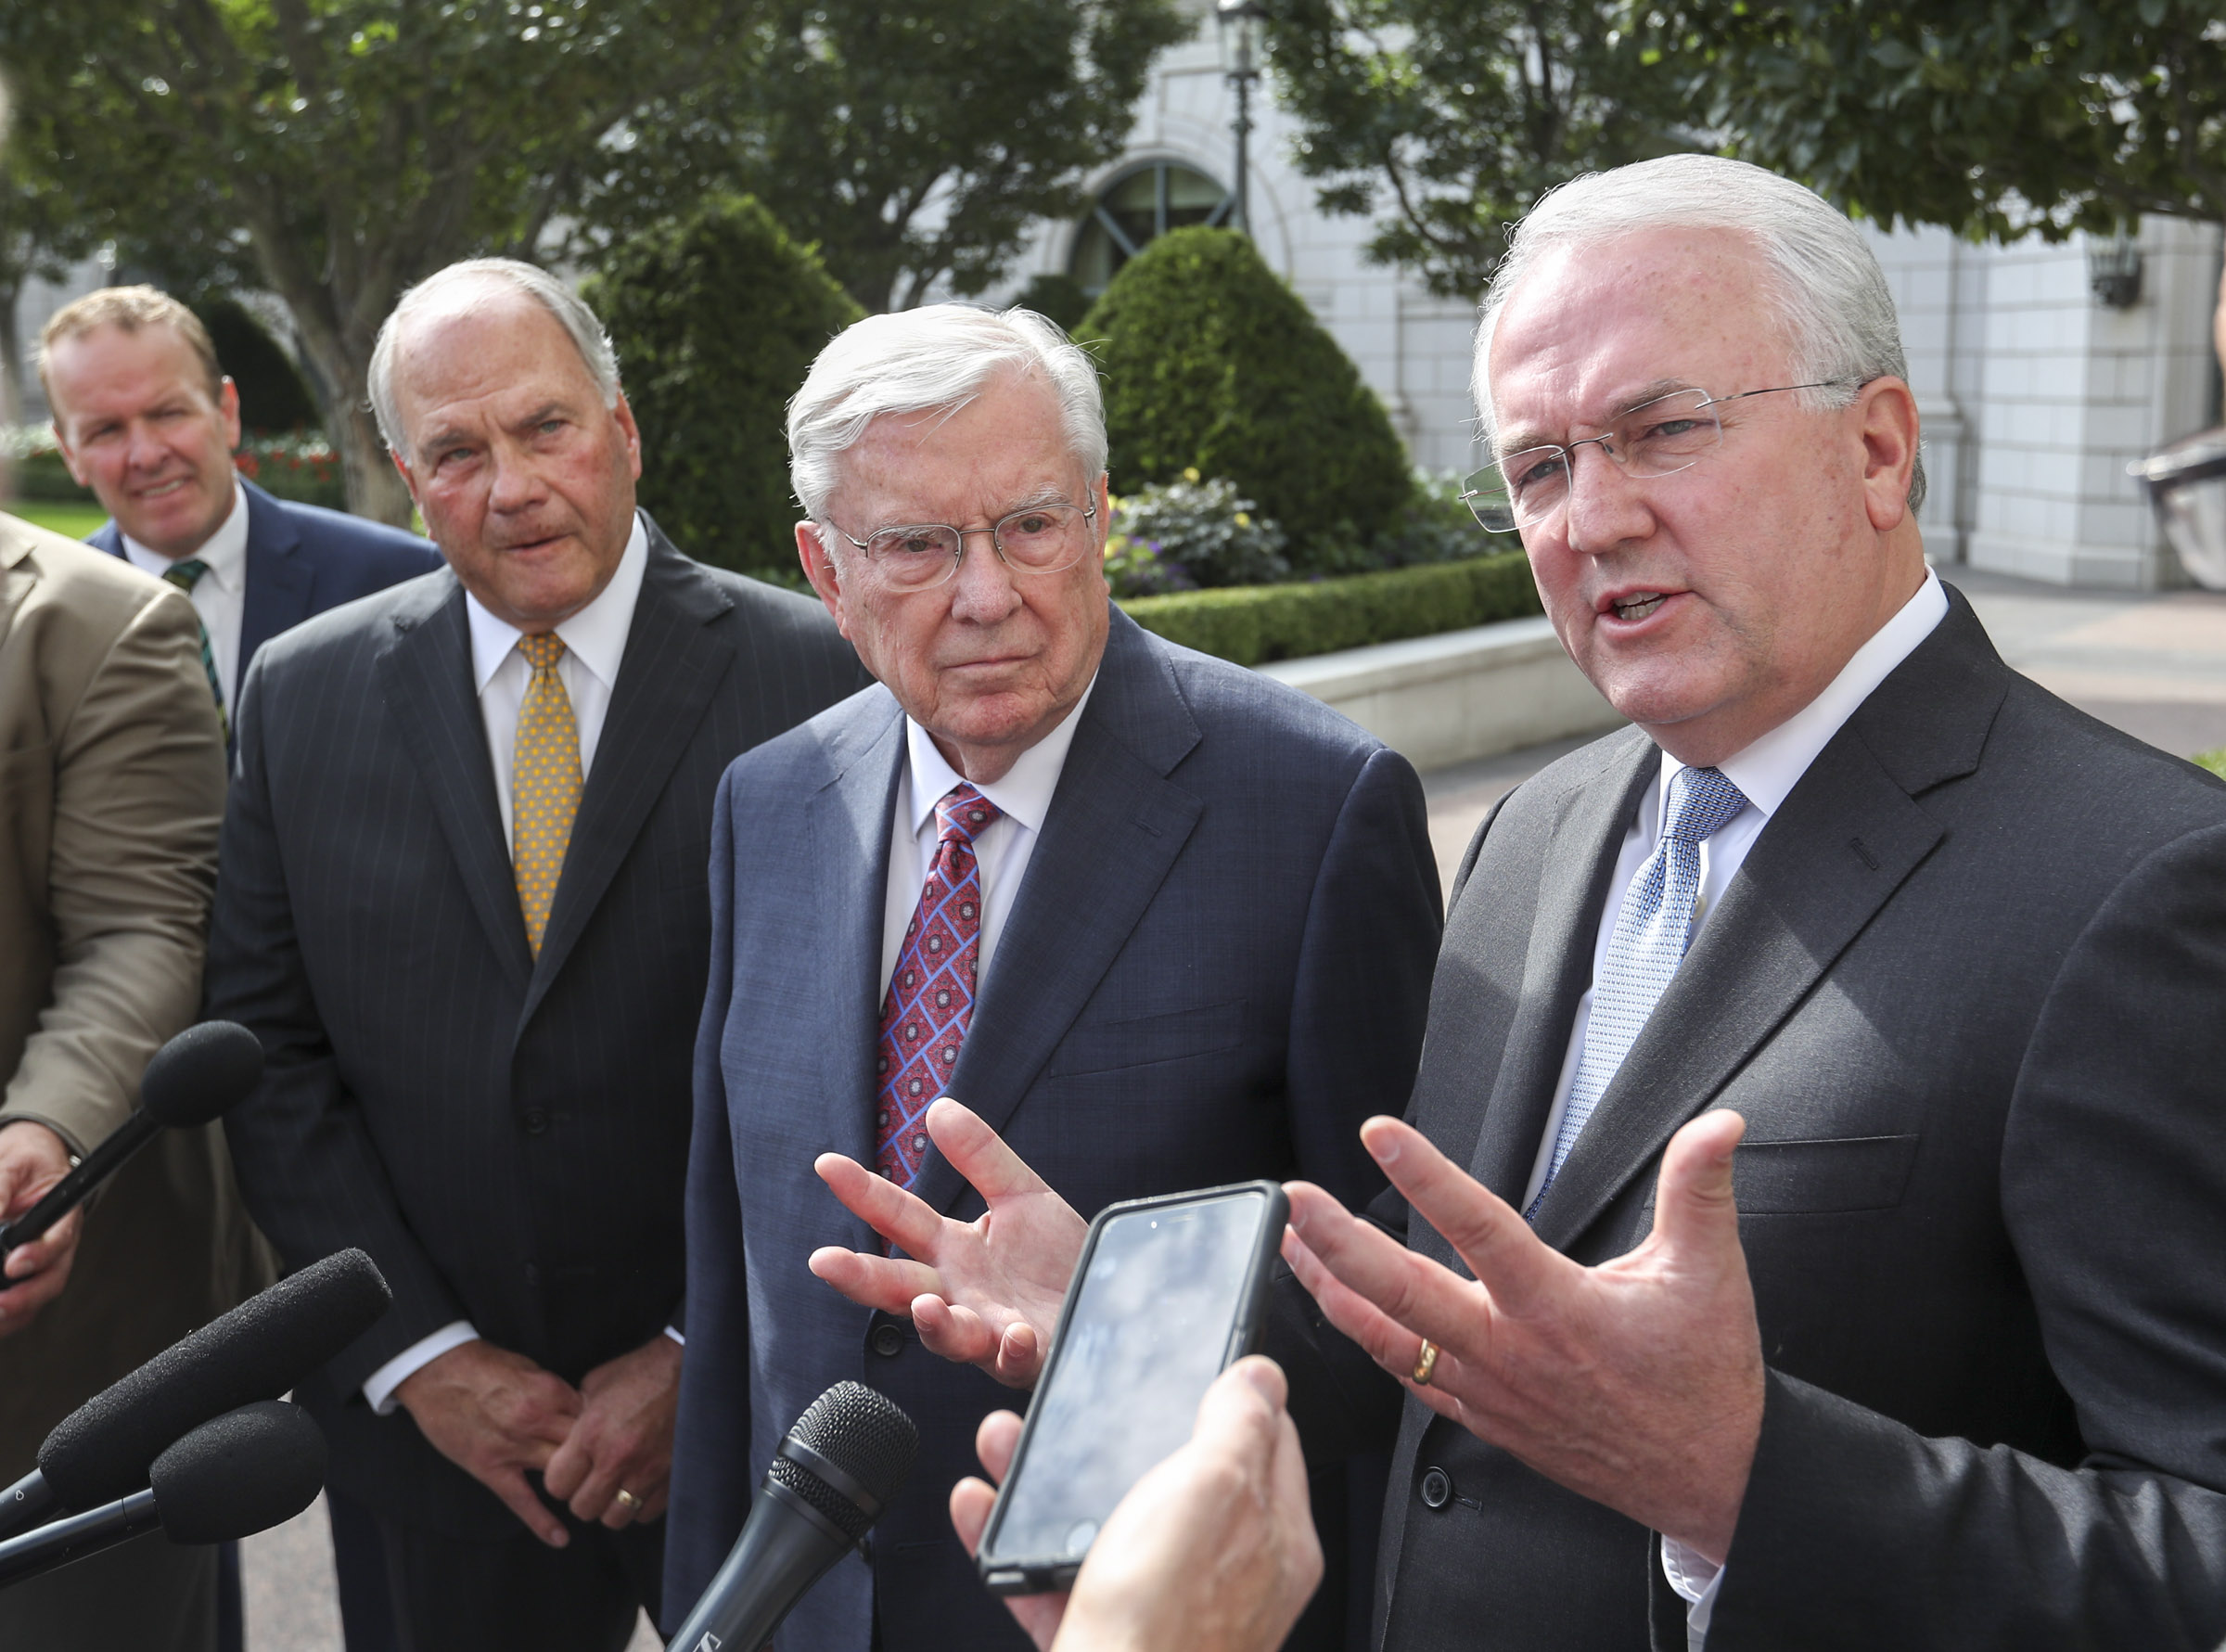 President M. Russell Ballard, center, acting president of the Quorum of the Twelve Apostles, and Elder Ronald A. Rasband, a member of the Quorum of the Twelve Apostles, left, listen as Elder Jack N. Gerard, a General Authority Seventy, right, speaks to members of the media following a meeting with Vice President Mike Pence at the Grand America Hotel in Salt Lake City on Thursday, Aug. 22, 2019.